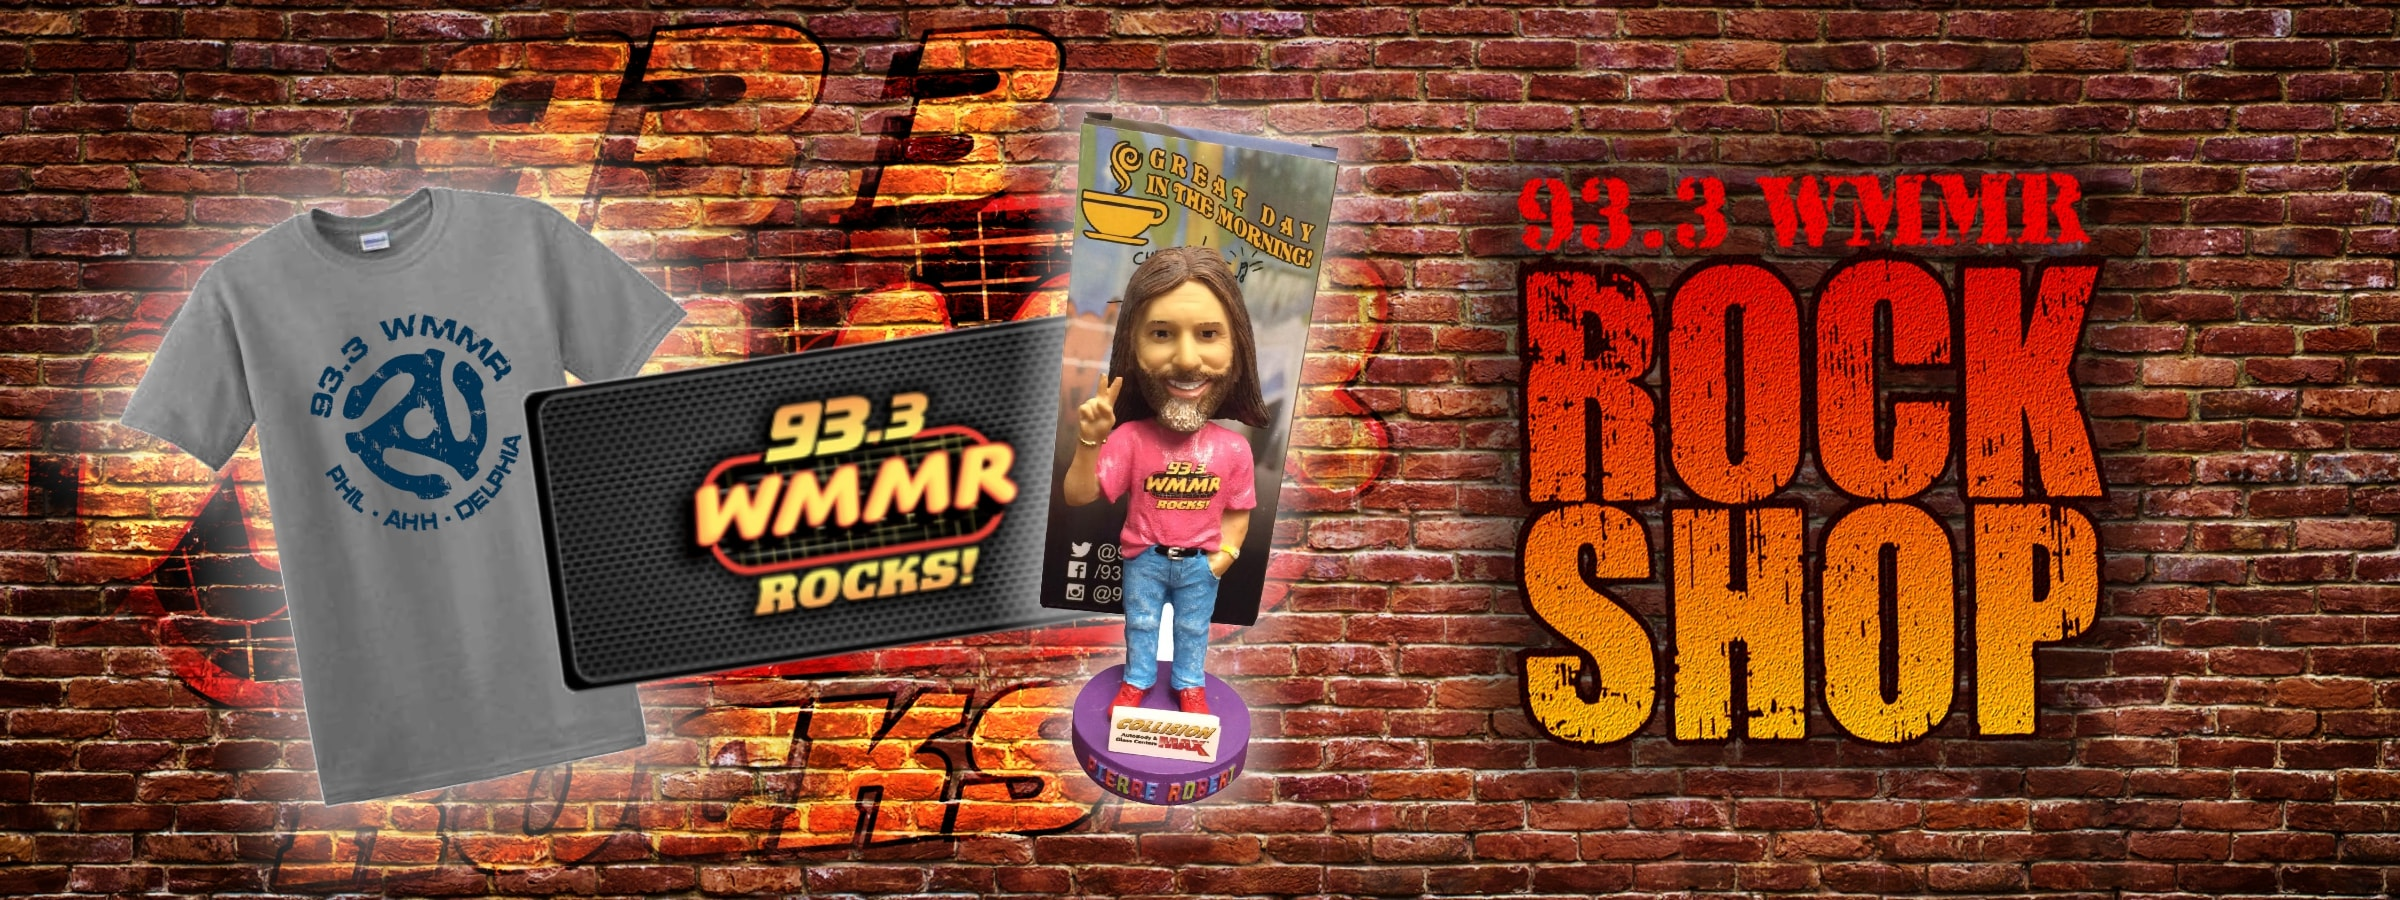 WMMR Rock Shop Calendars Bobbleheads etc